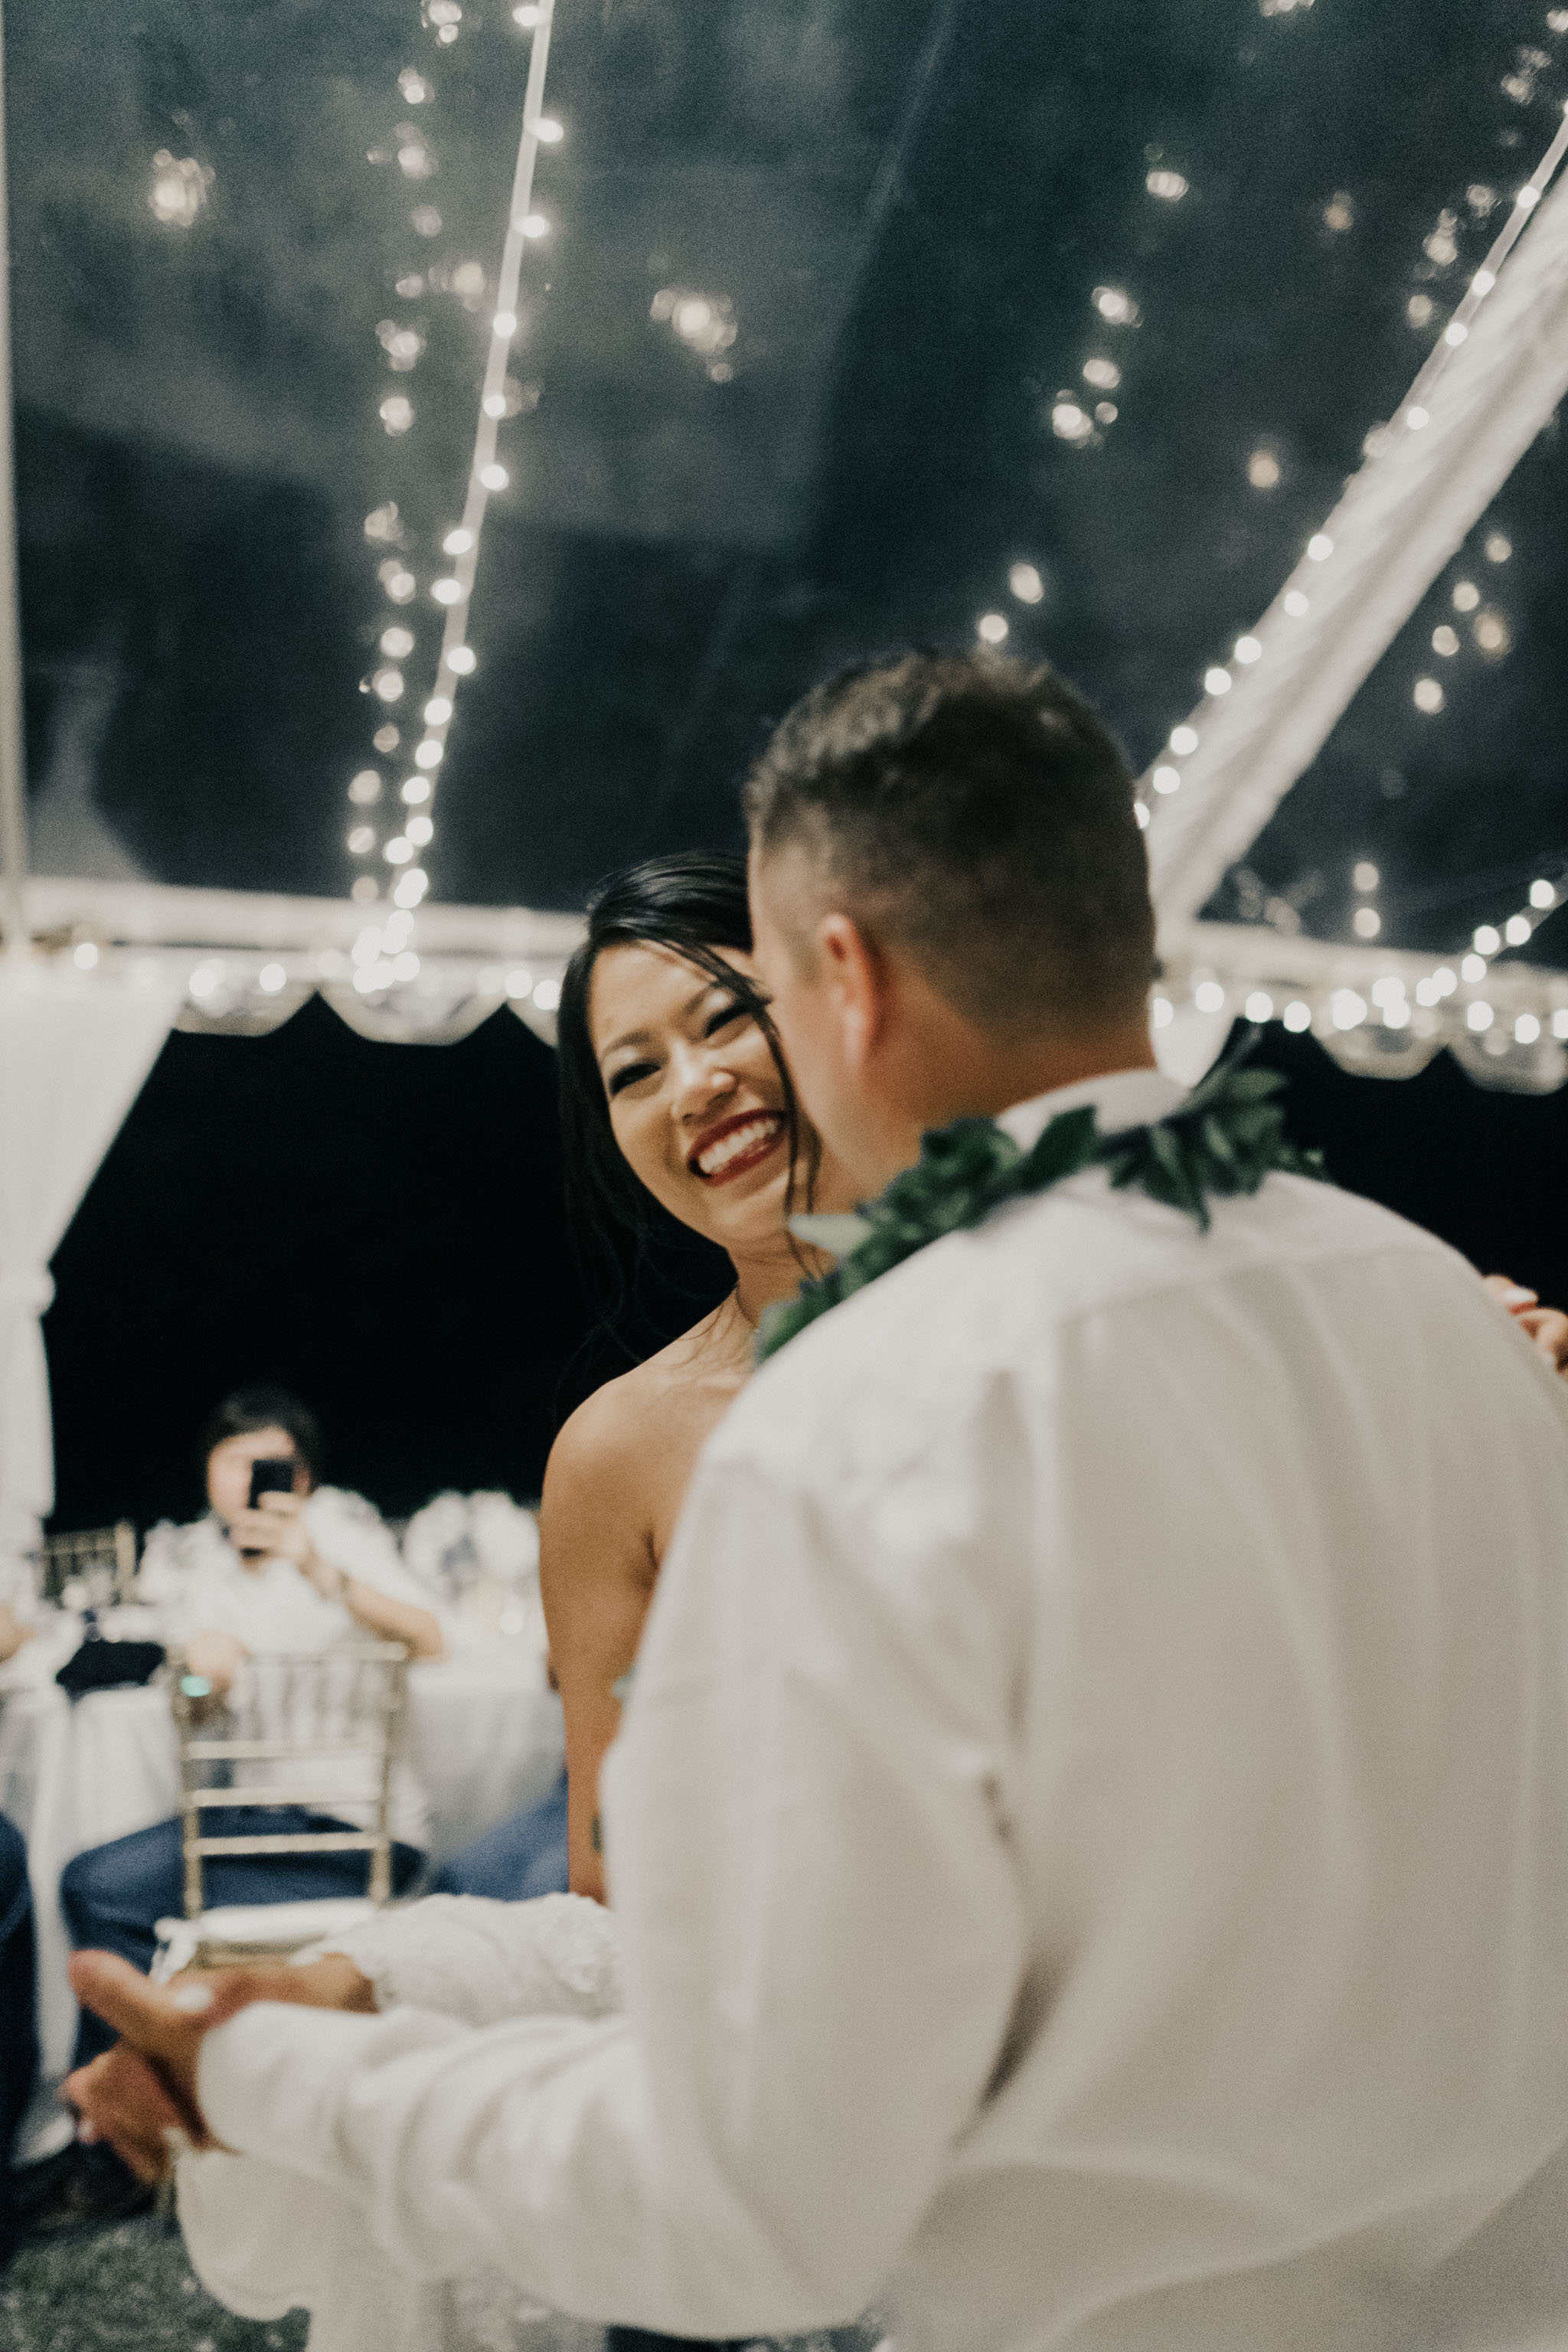 First dance at a Kualoa Ranch wedding. Photo by Oahu wedding photographer Desiree Leilani